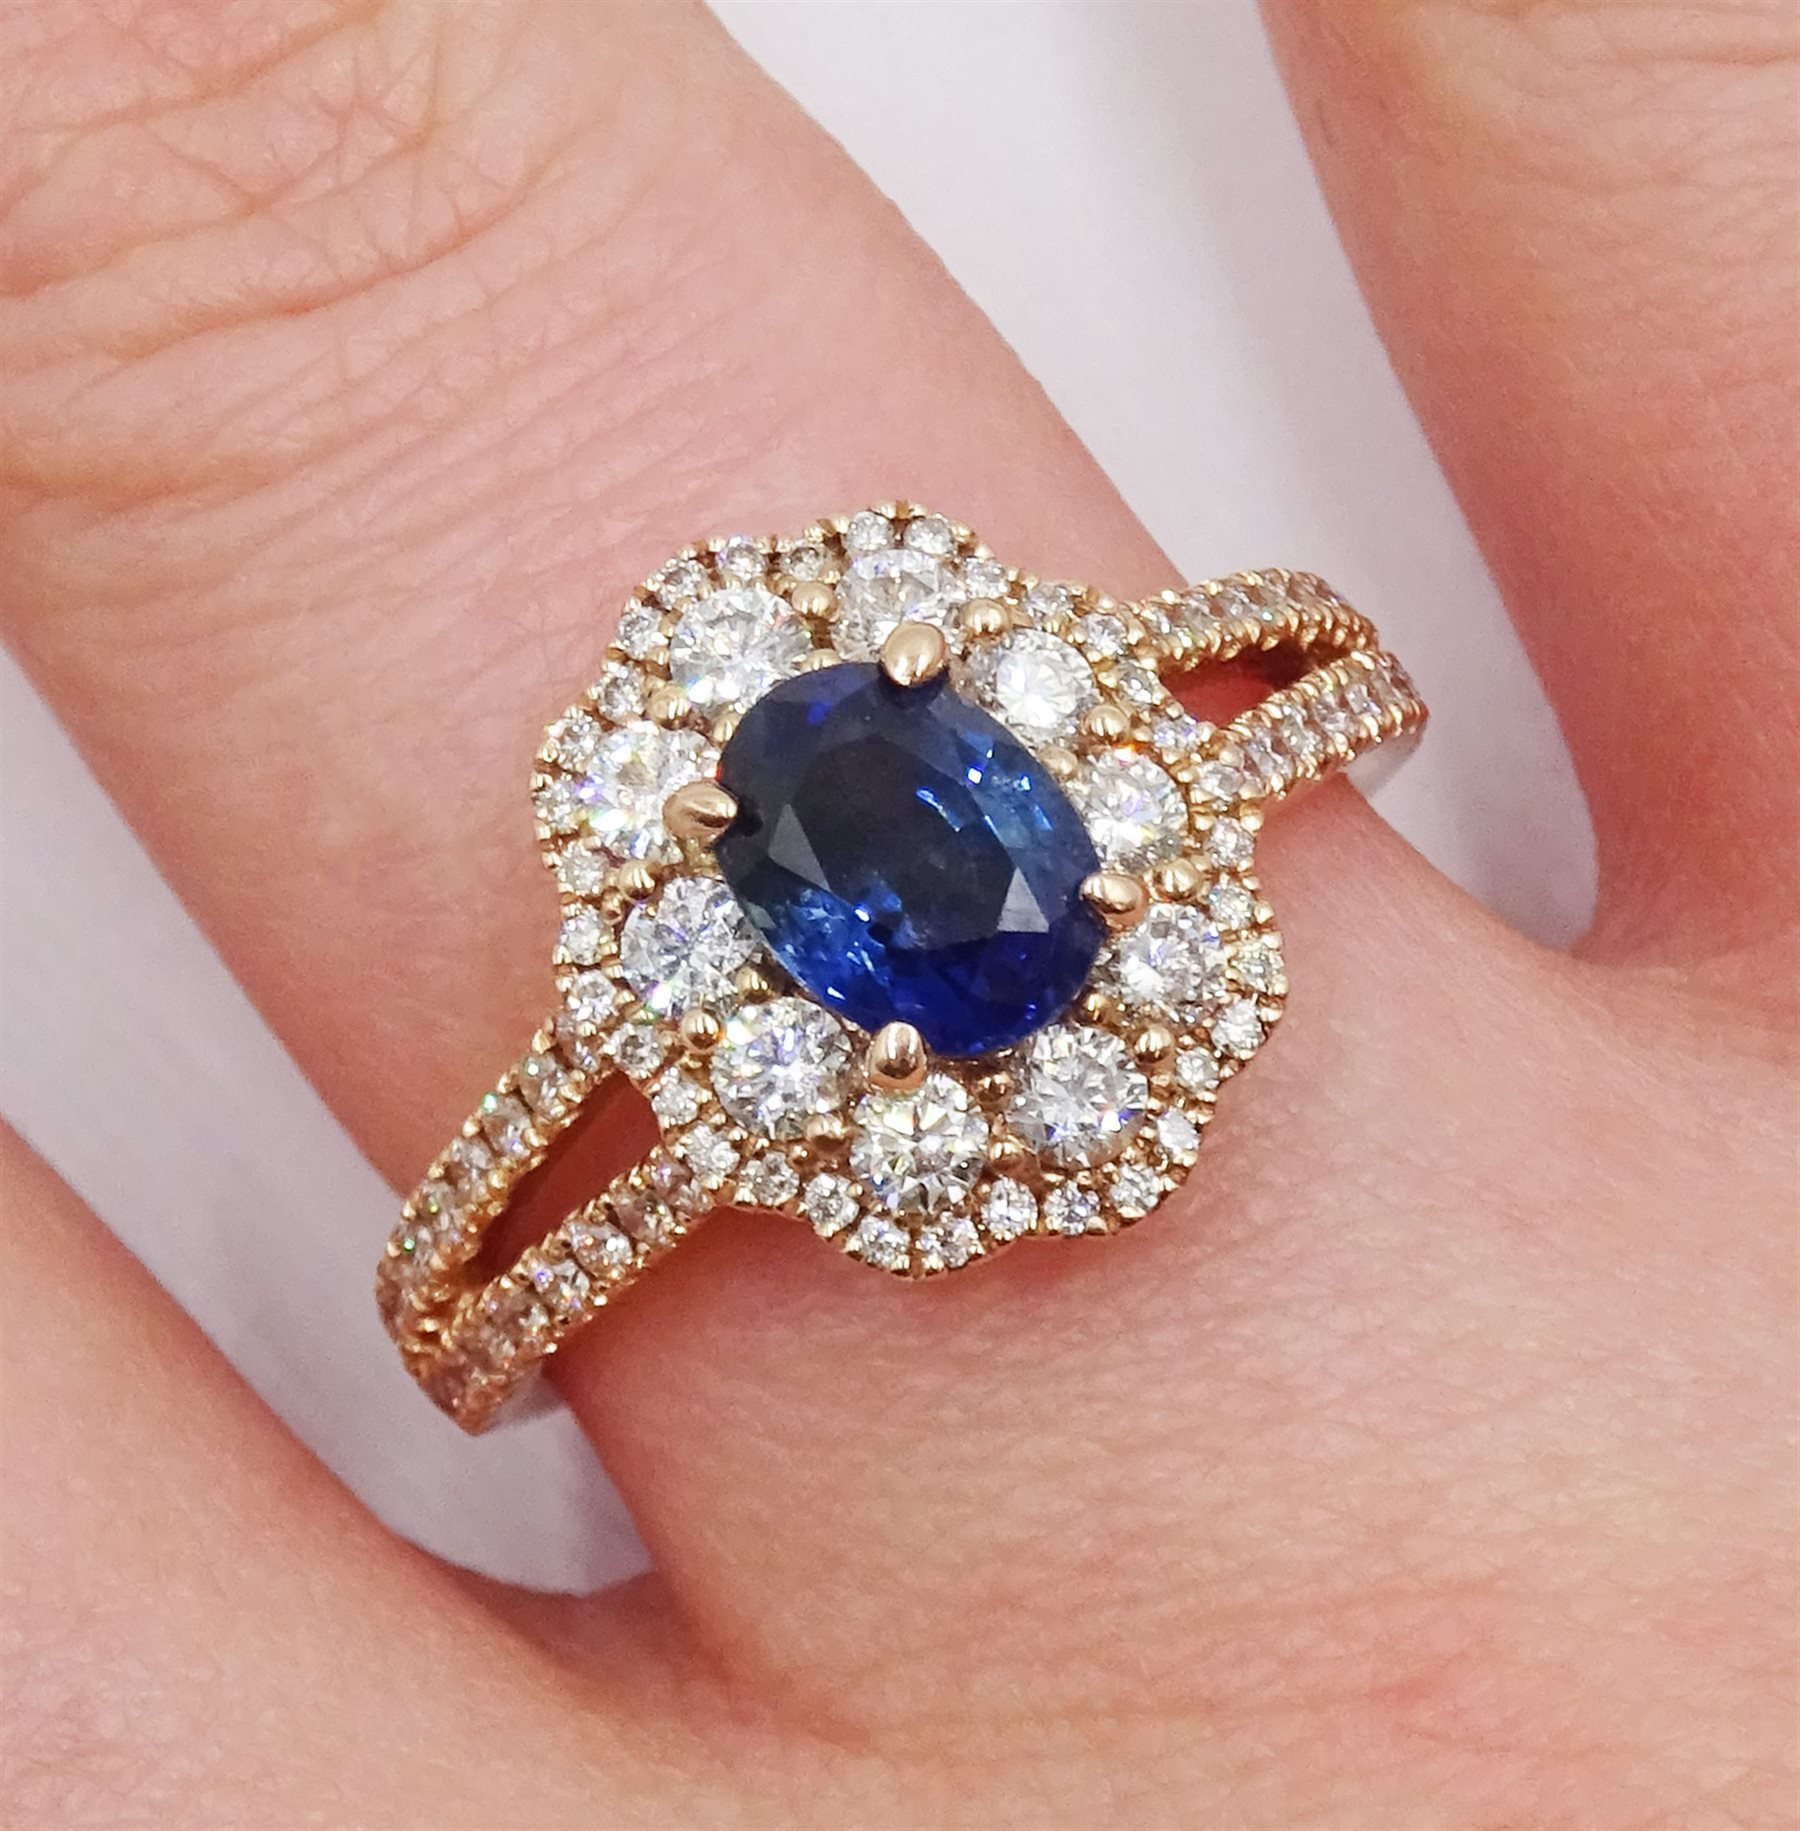 18ct rose gold oval sapphire and diamond cluster ring, with diamond set shoulders, hallmarked, sapph - Image 2 of 6